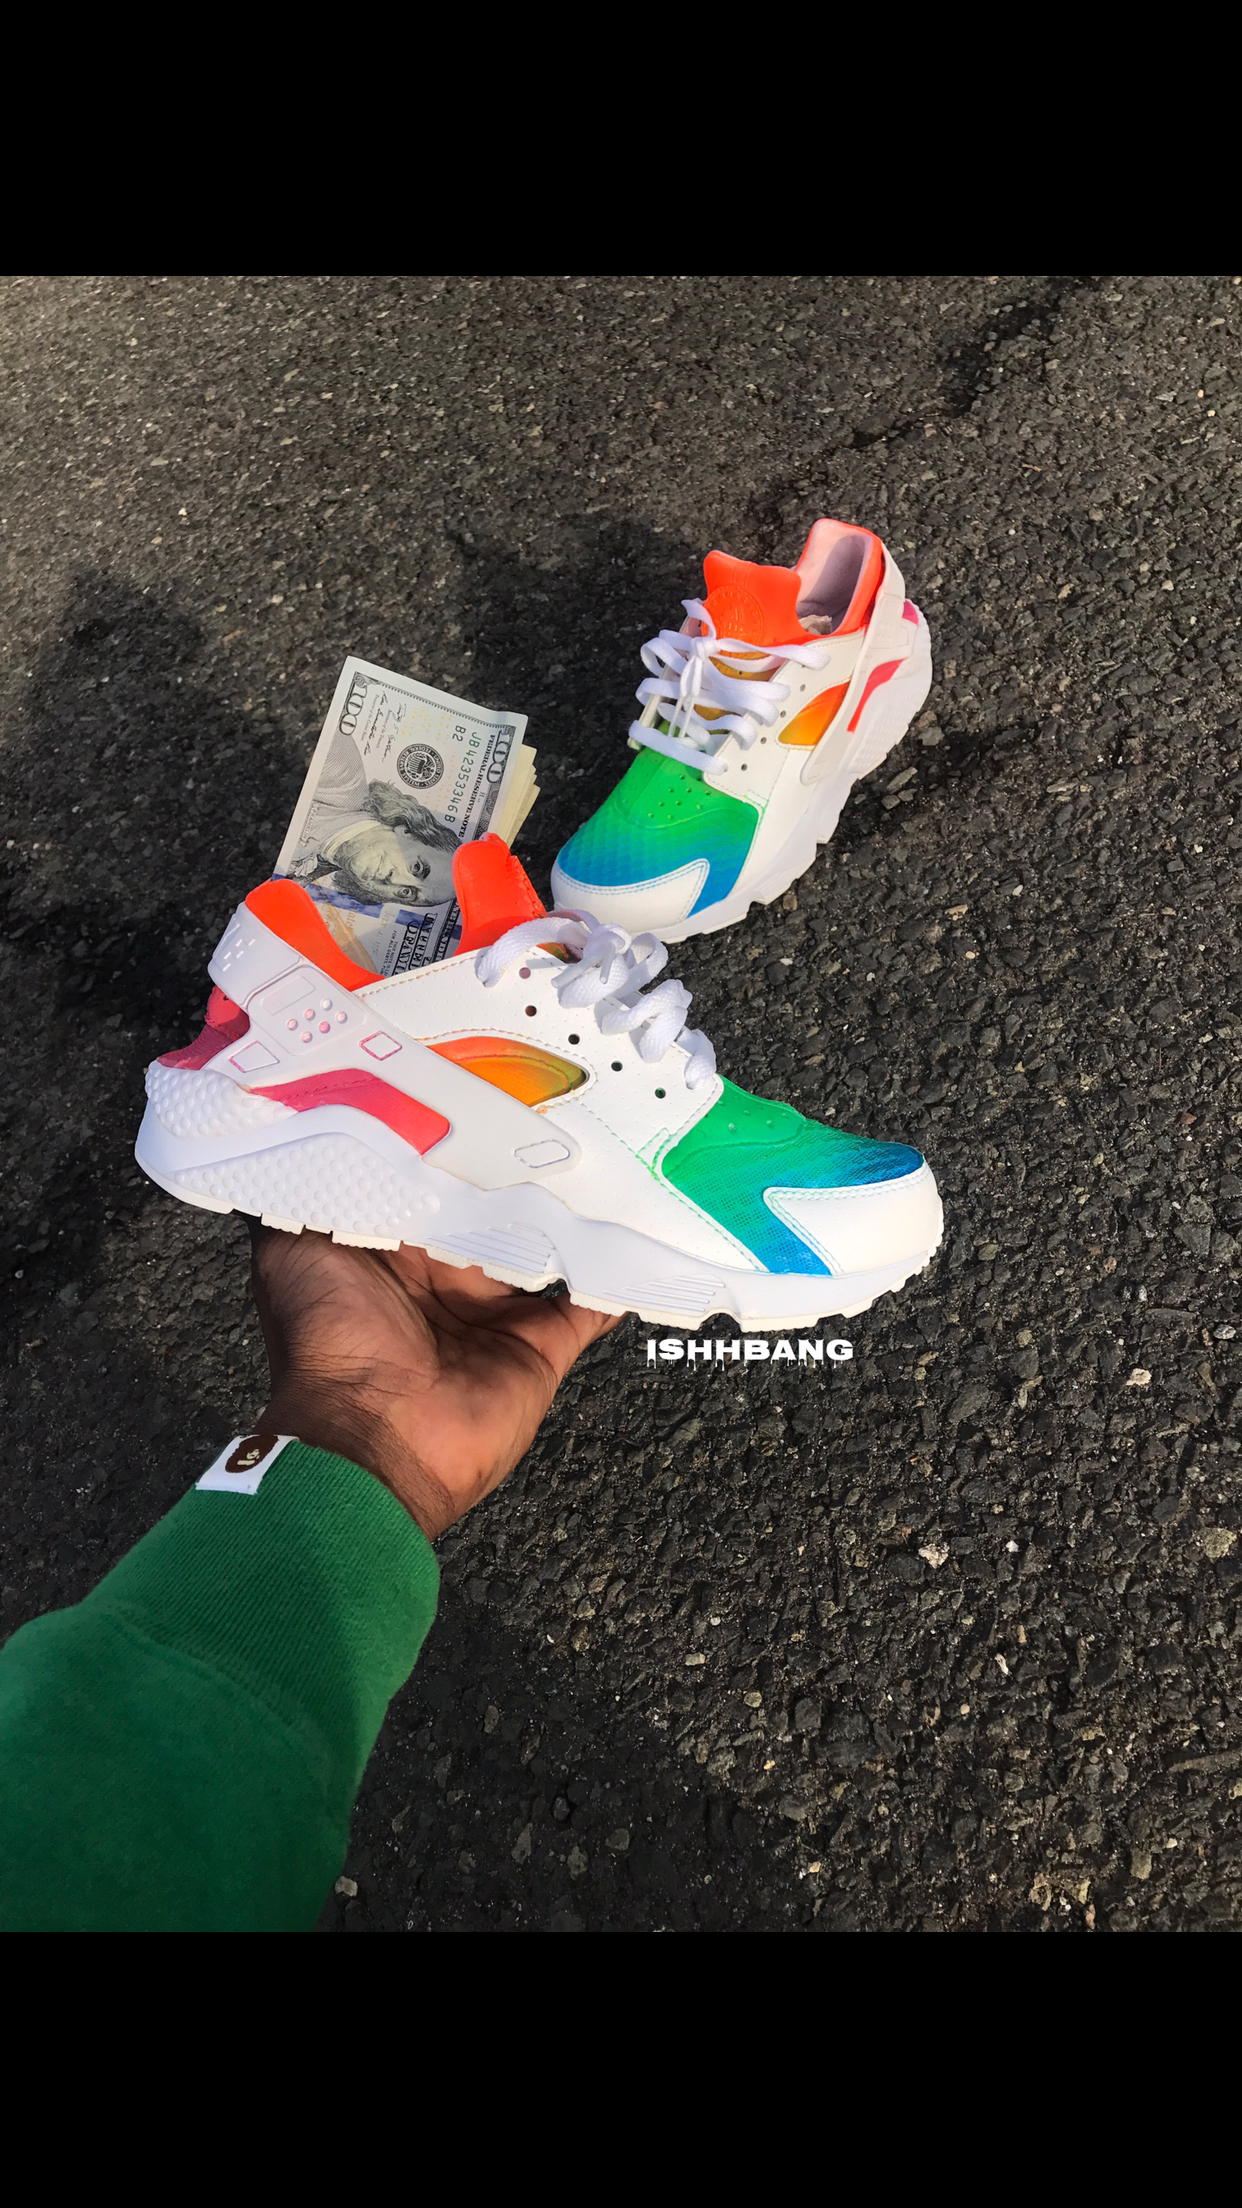 Rainbow d Huaraches - If you want any other colorways 62cf1a6f9